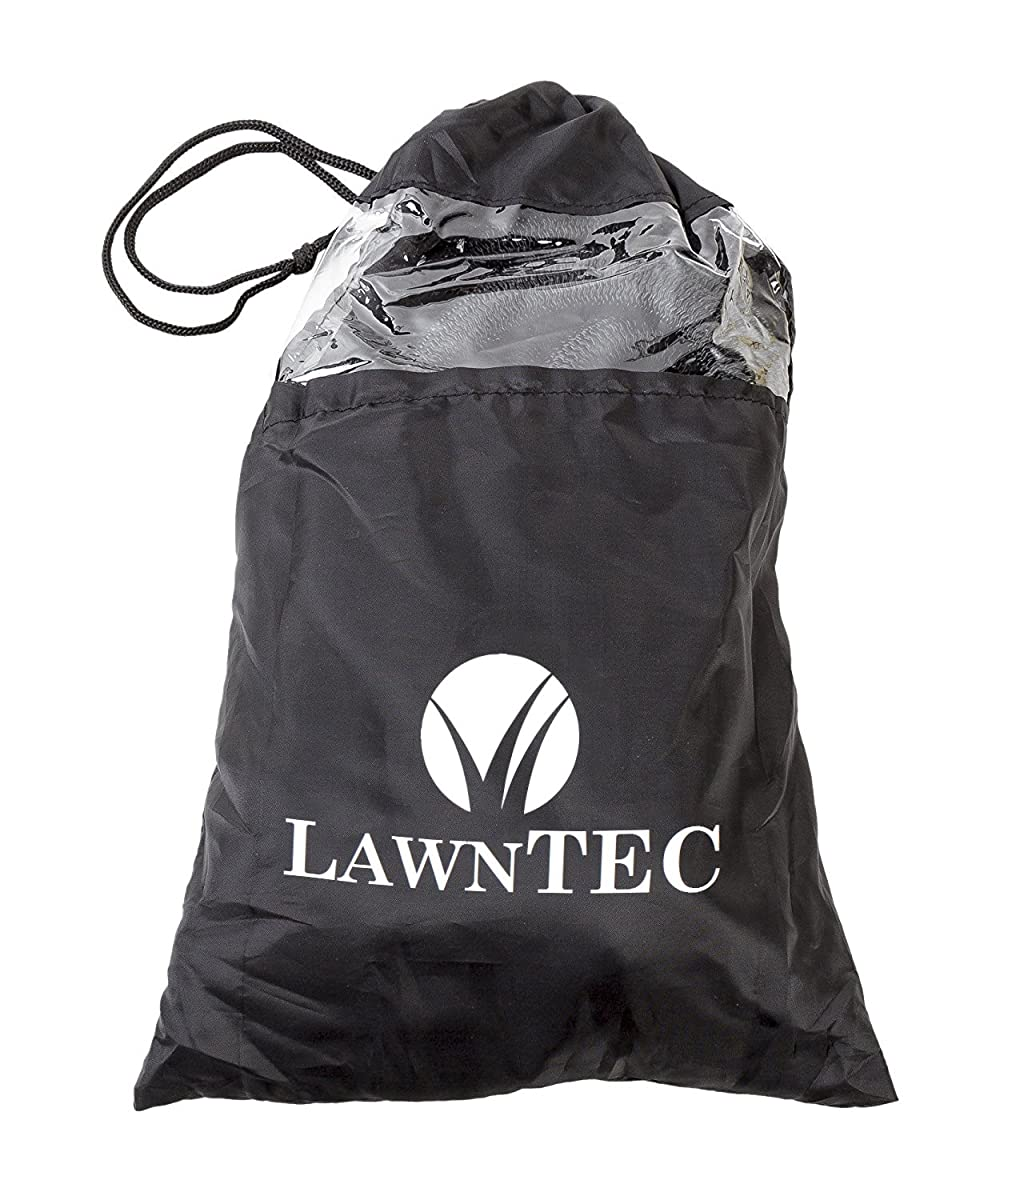 LawnPRO 50' Expanding Garden Hose. Kink-Free. 5,000 Denier Woven Casing. Copper Fittings. Steel Assembly Clamps. 12 Month Manufacturers Warranty. + Free Storage Bag